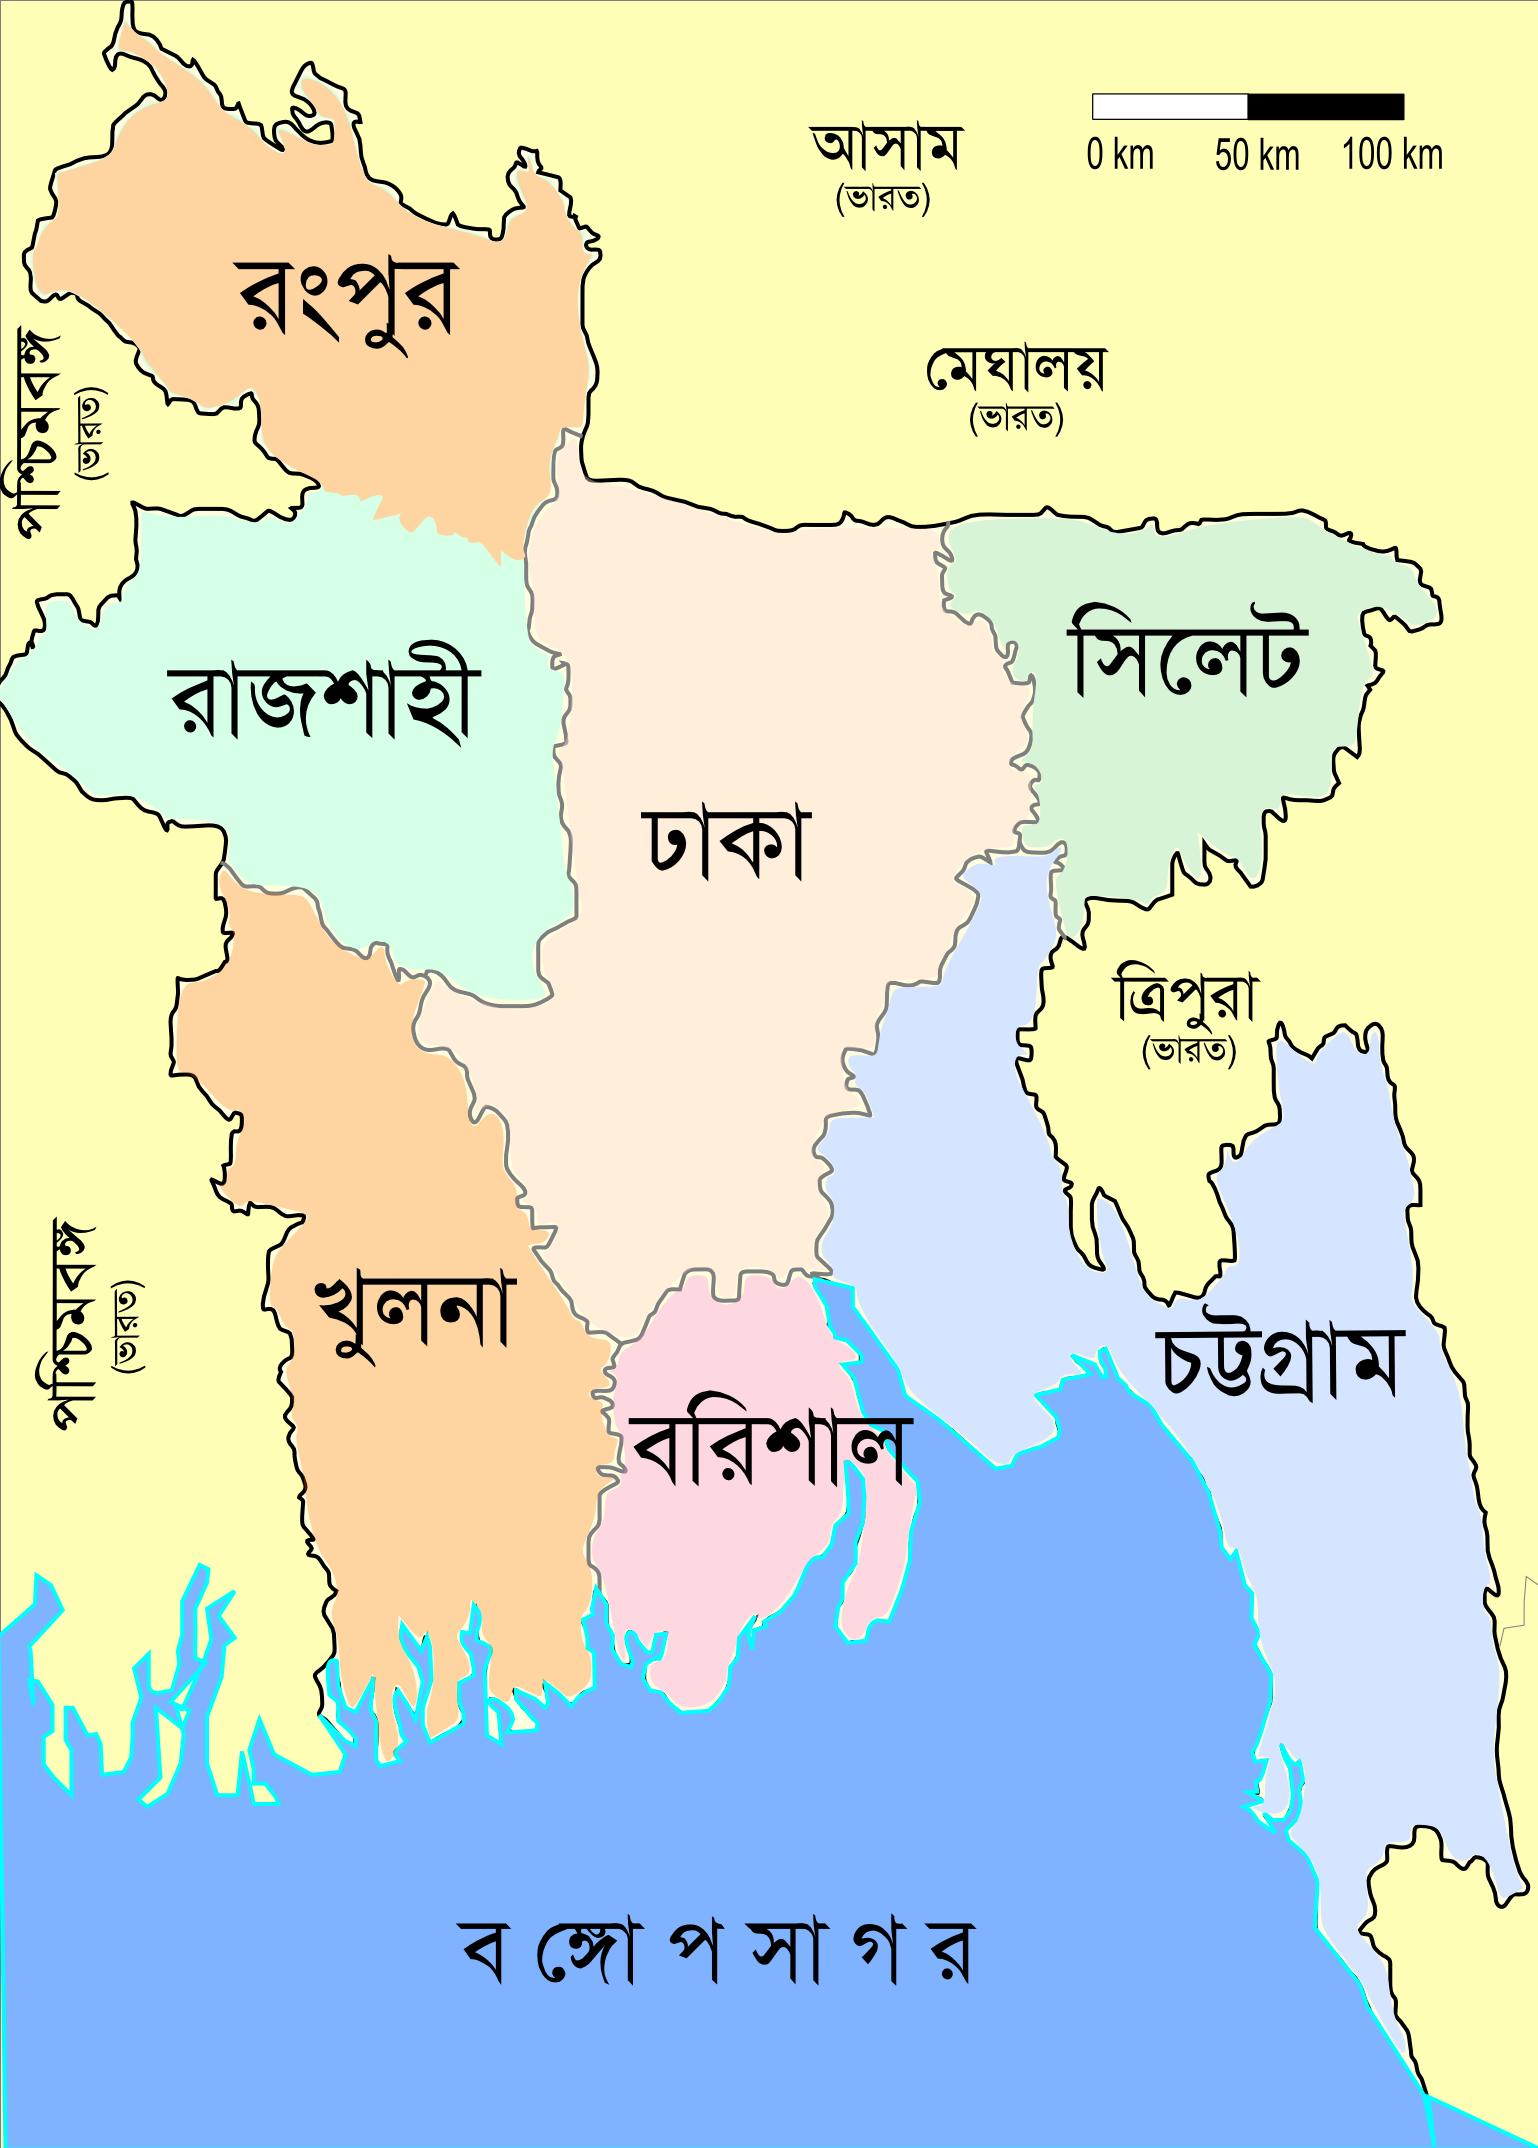 Filebangladesh divisions bengalig wikimedia commons filebangladesh divisions bengalig gumiabroncs Choice Image